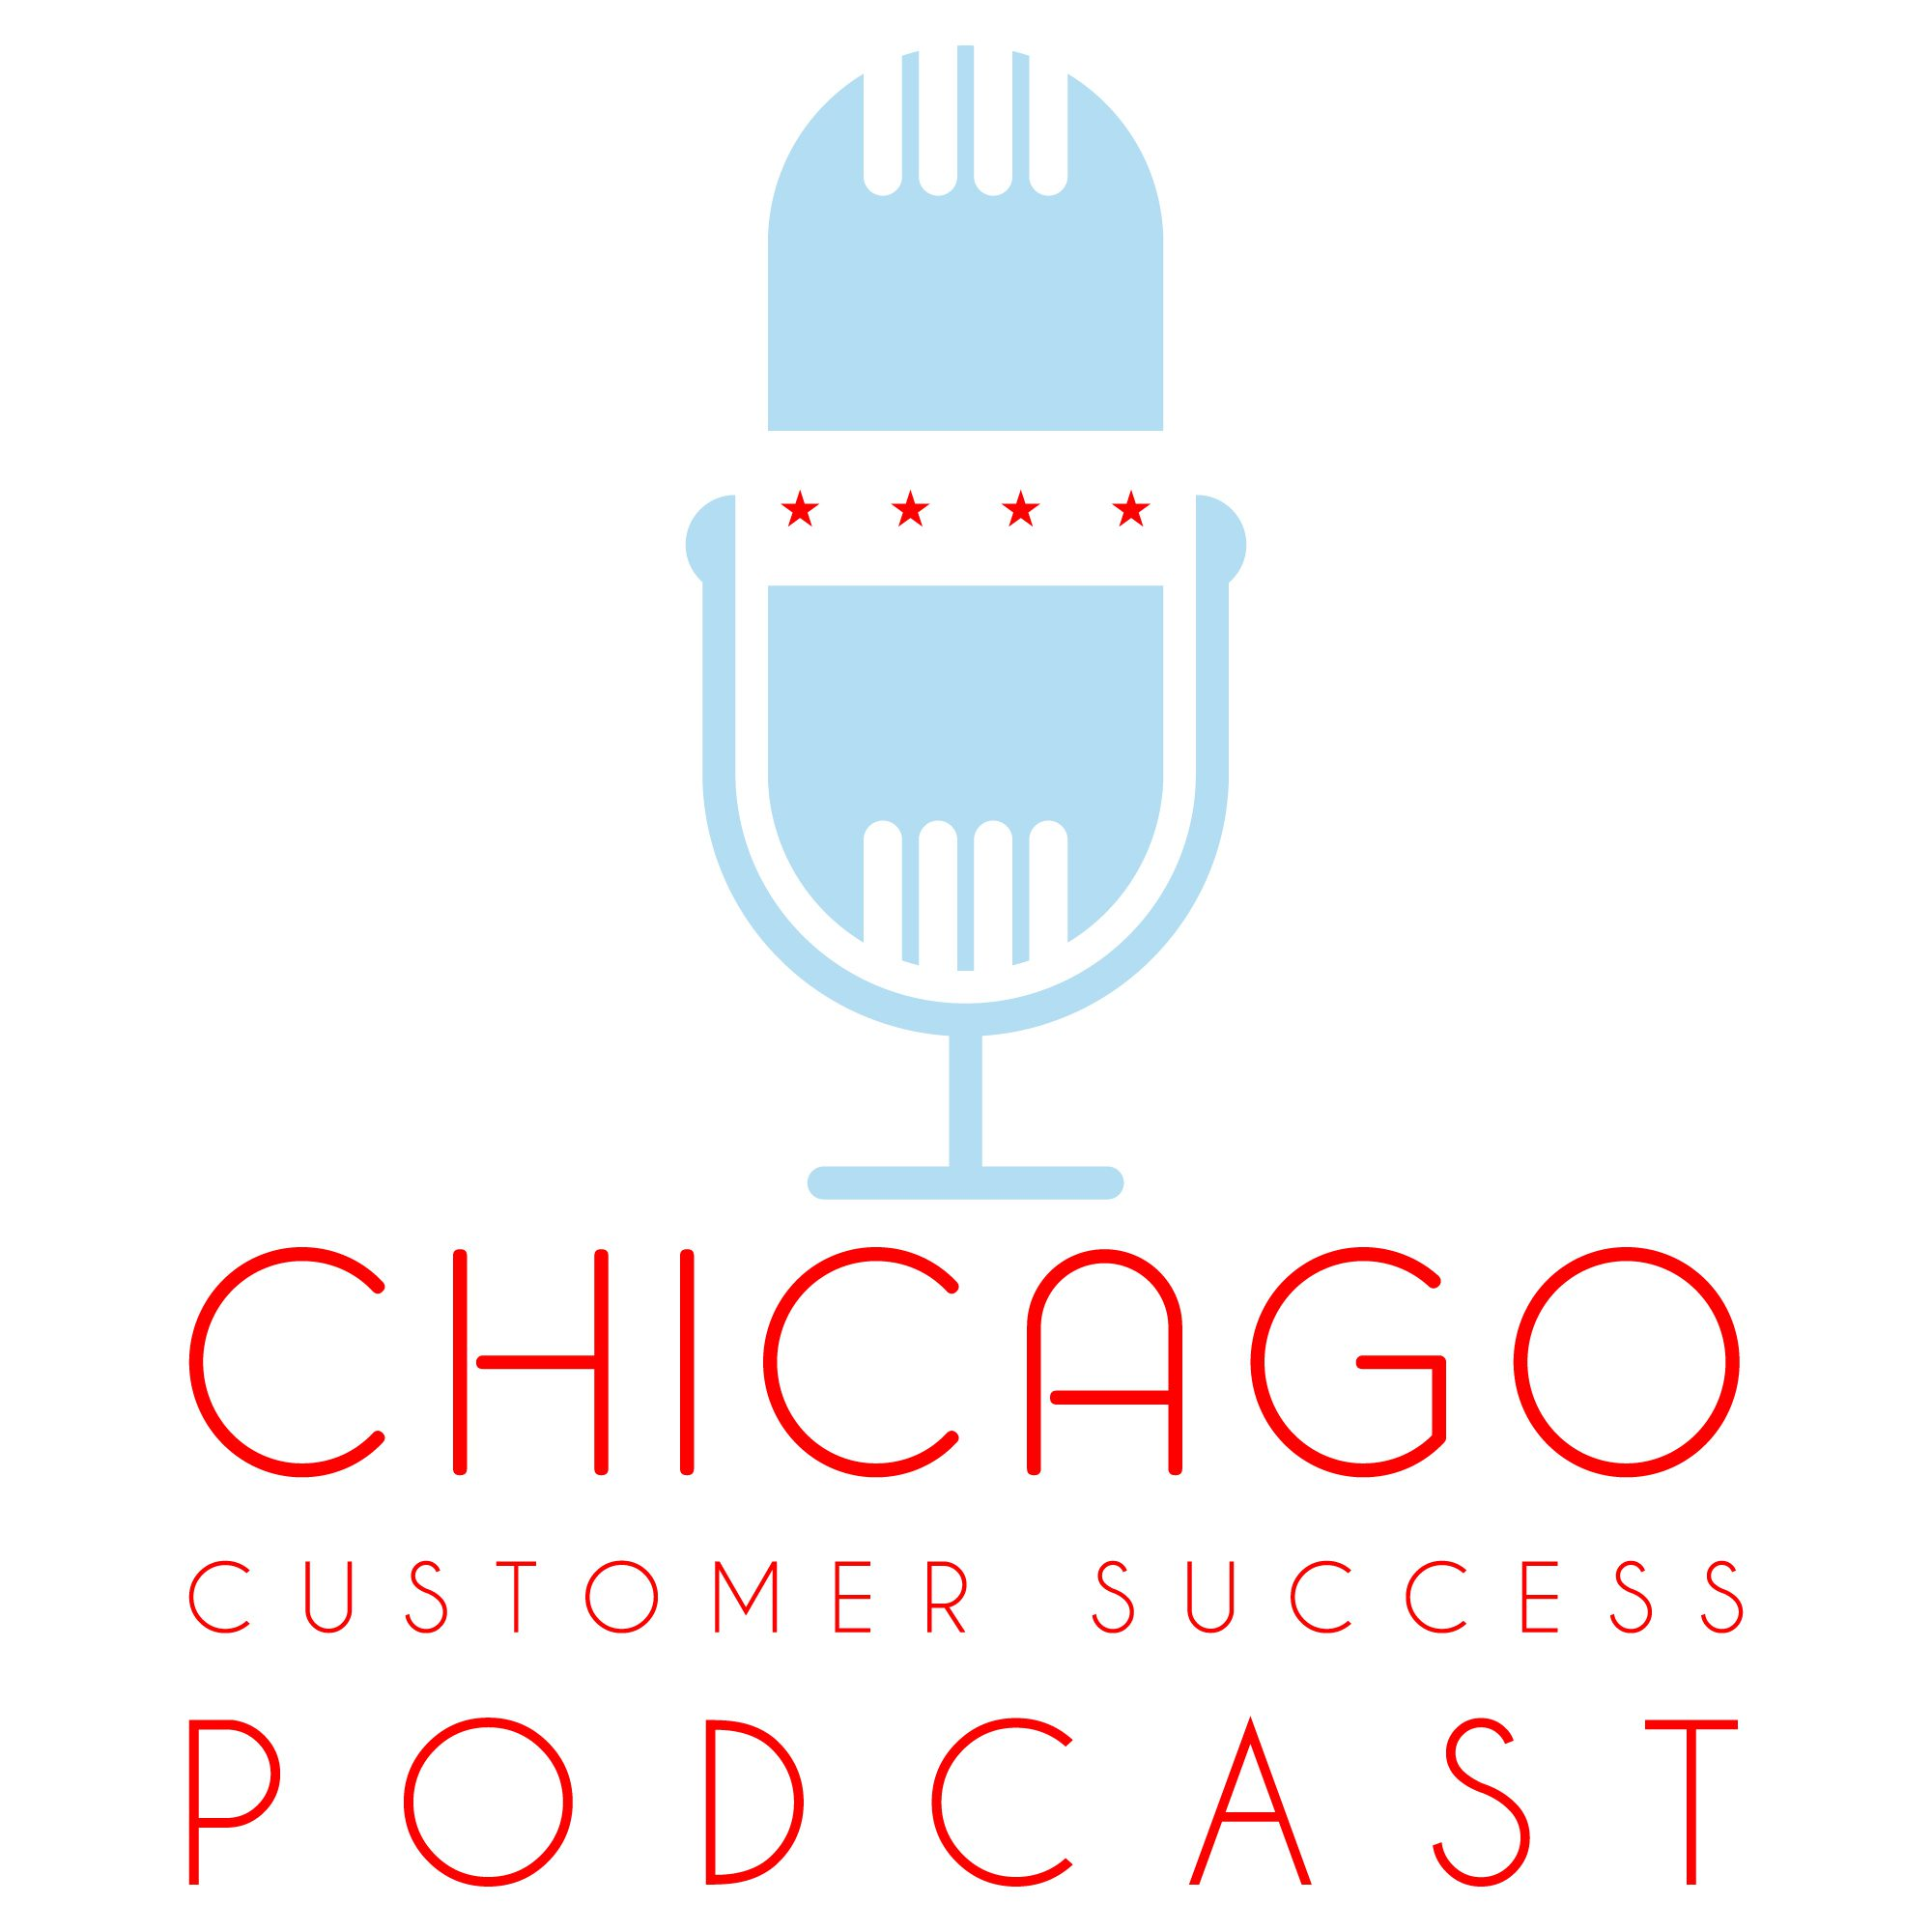 Chicago Customer Success Podcast